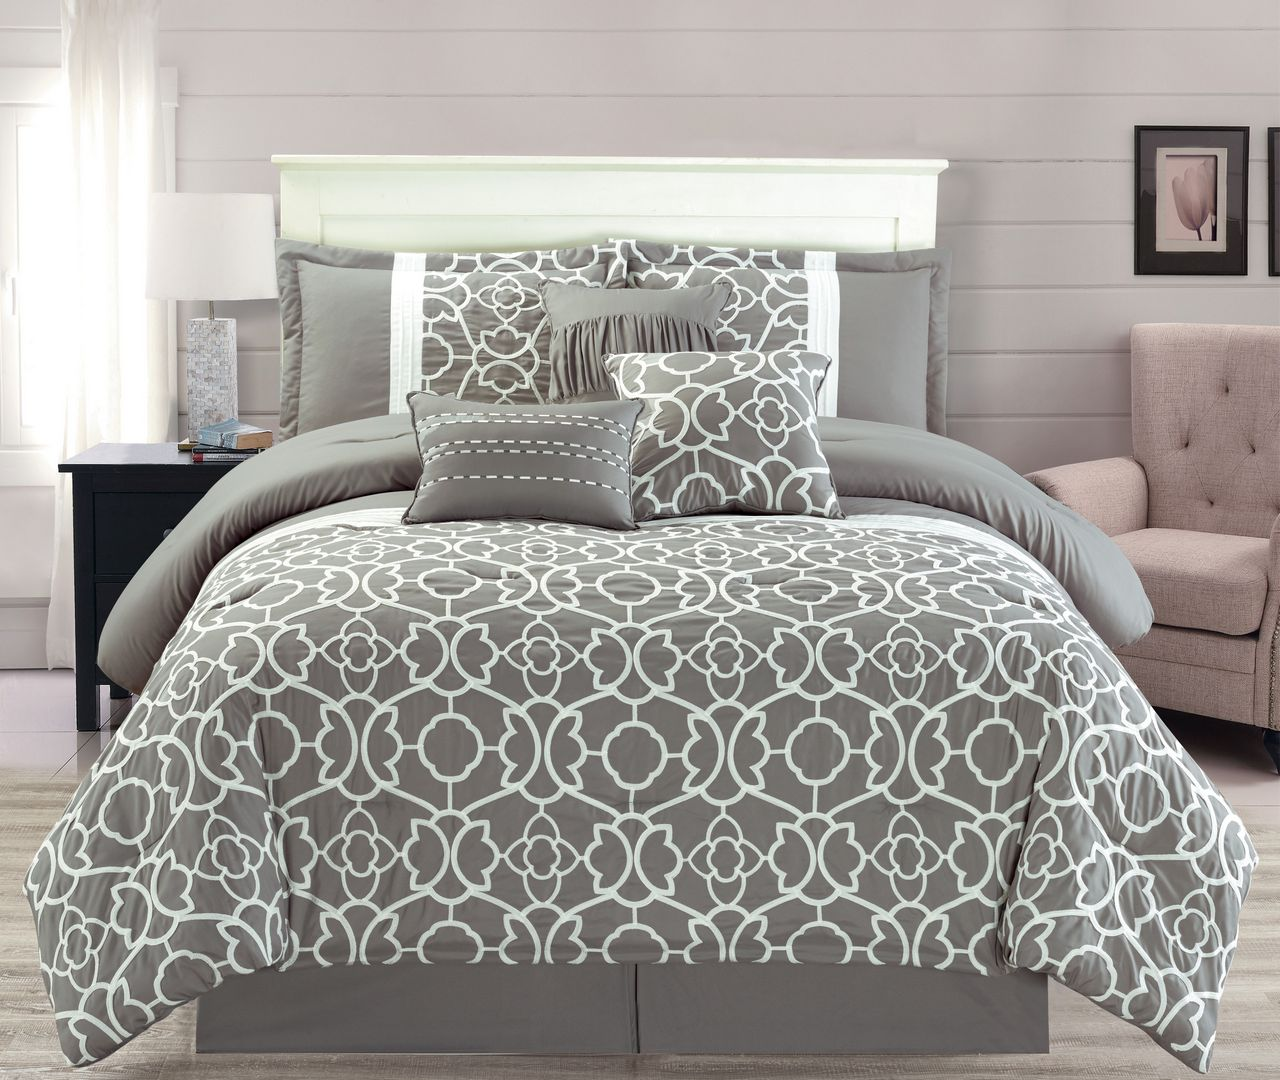 Image result for 7 Piece Ladera Gray Comforter Set King